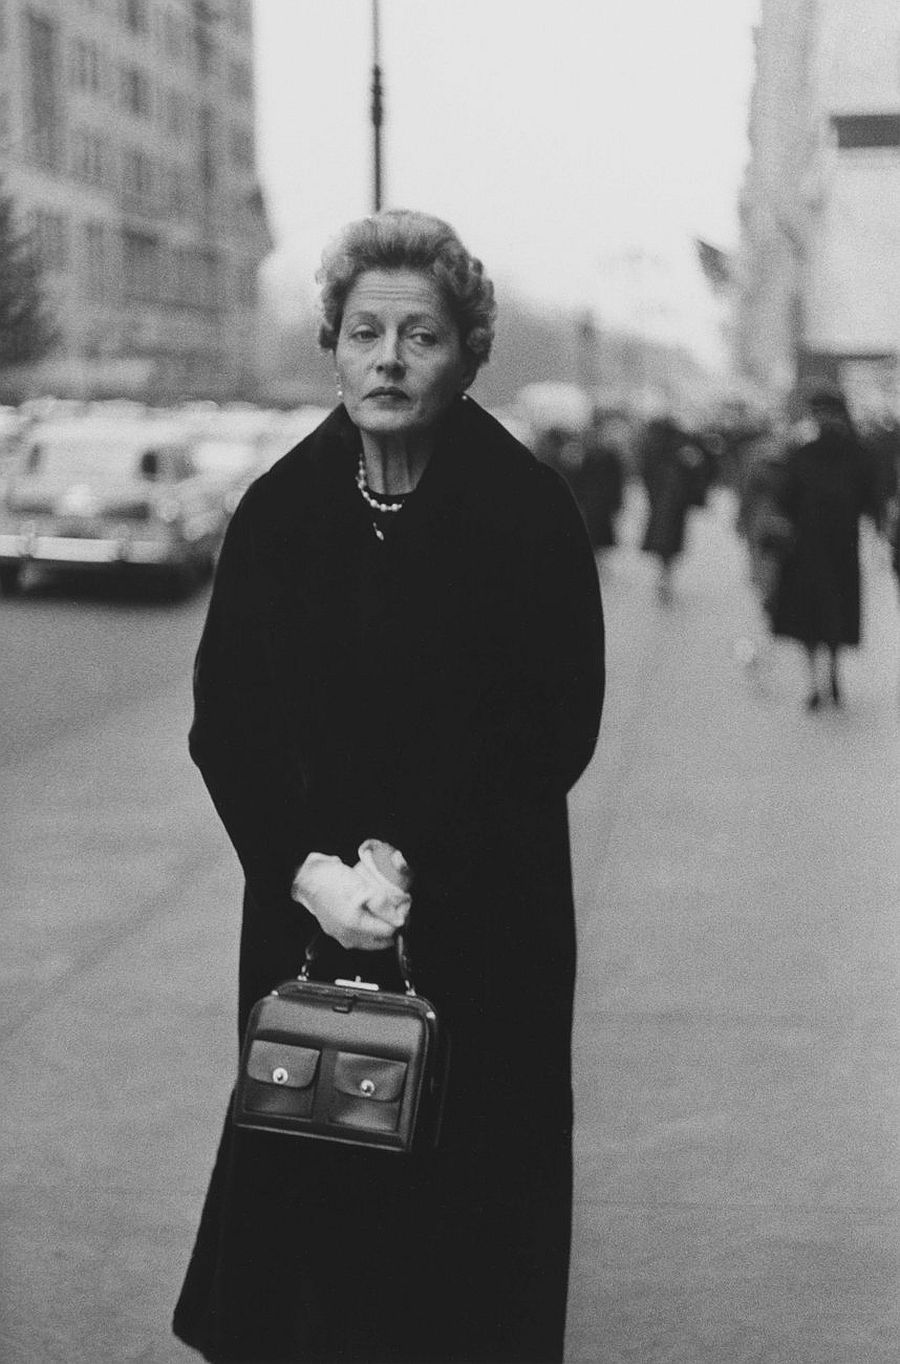 Diane Arbus, Woman with white gloves and a pocketbook, N.Y.C., 1956.